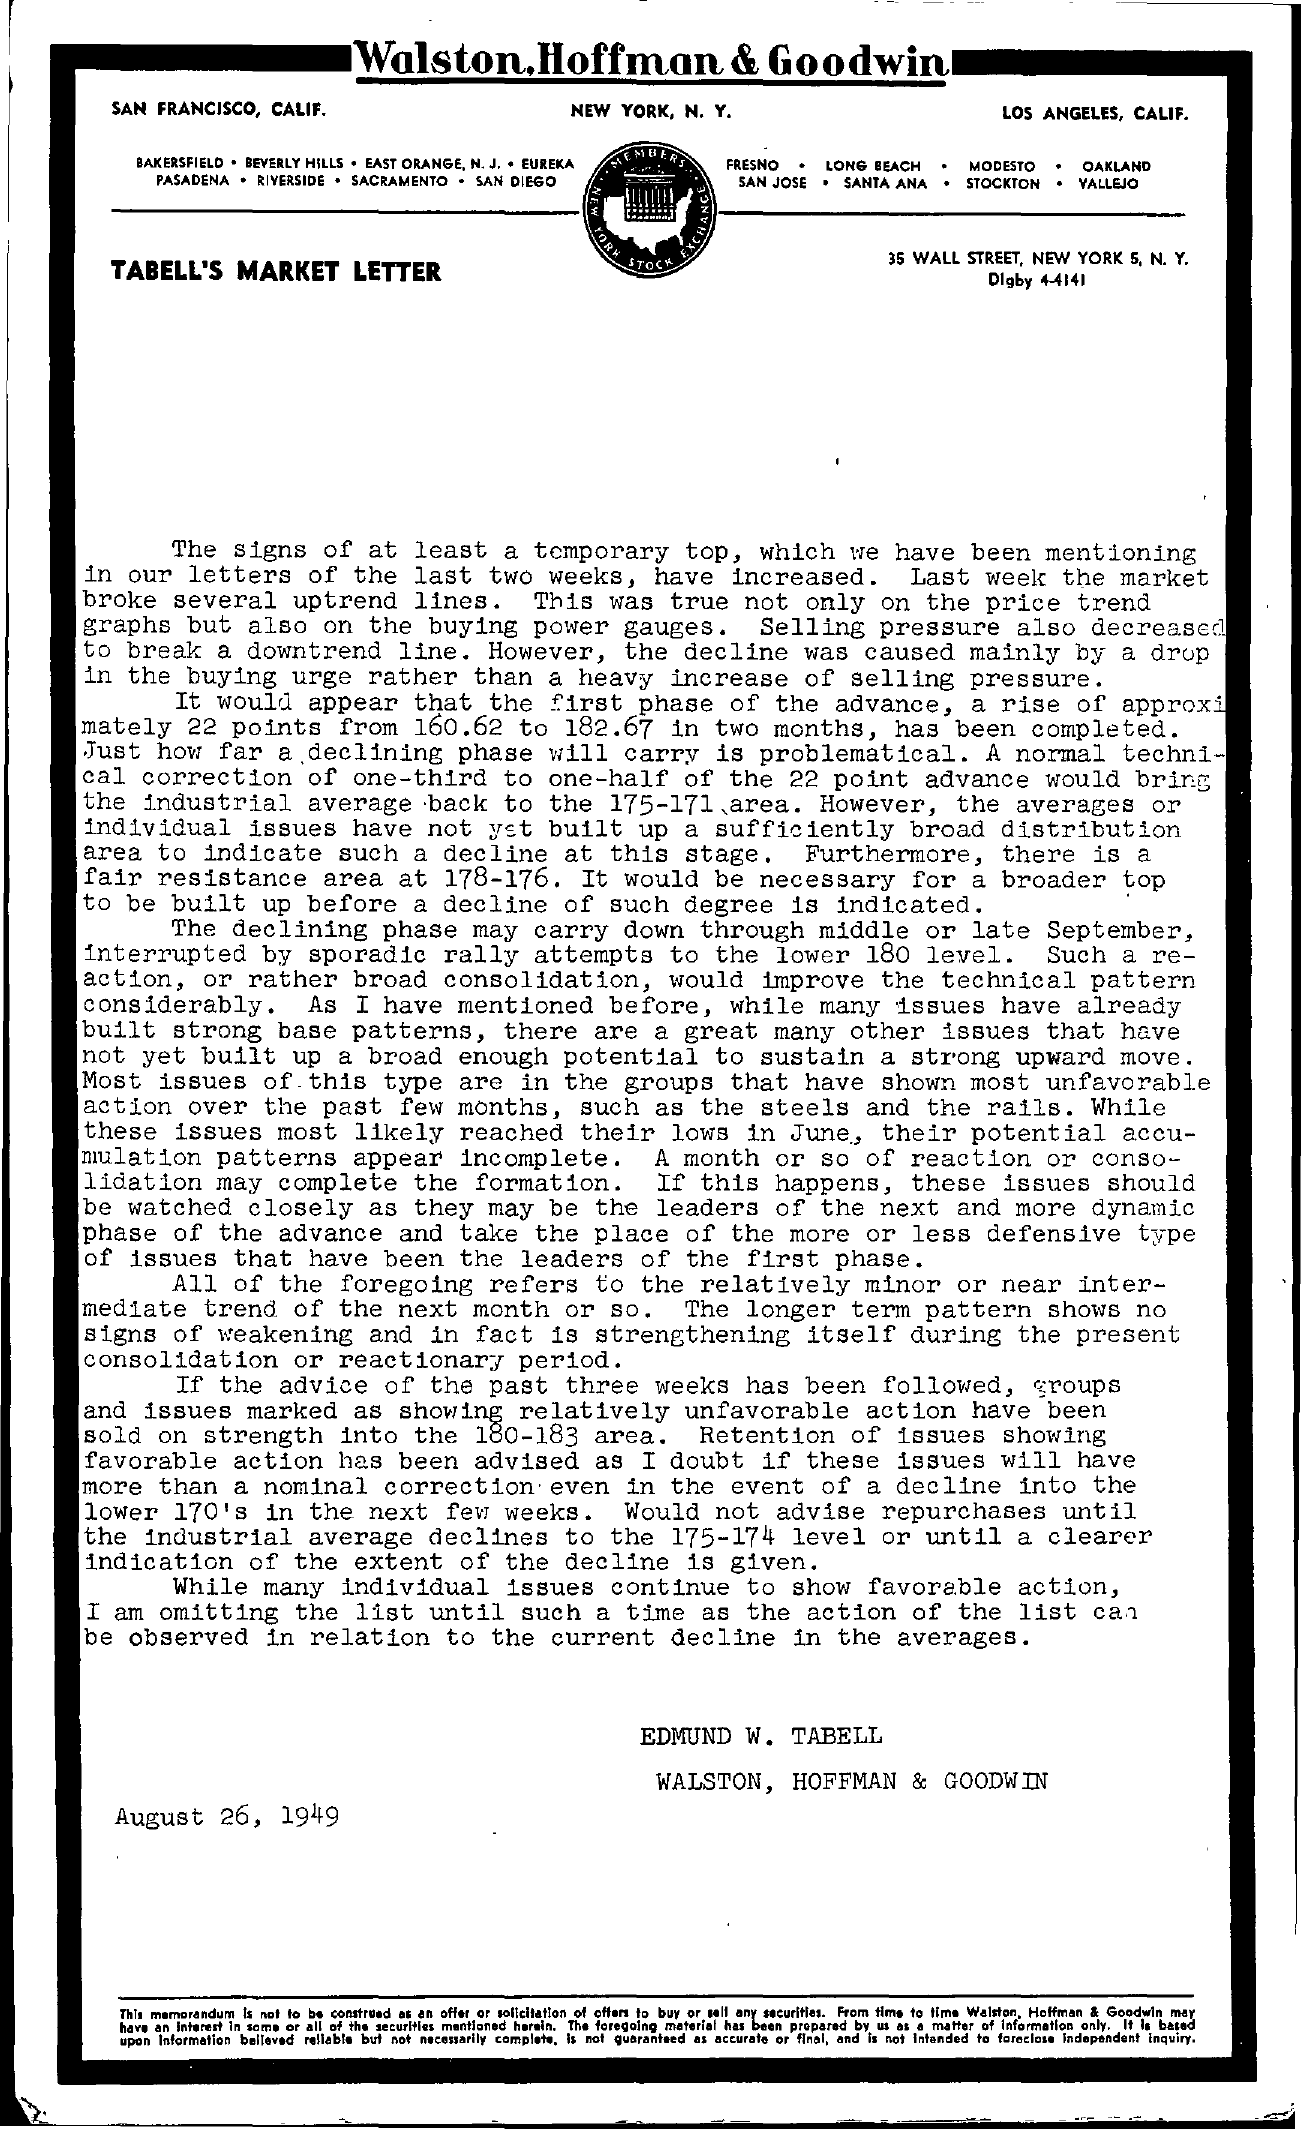 Tabell's Market Letter - August 26, 1949